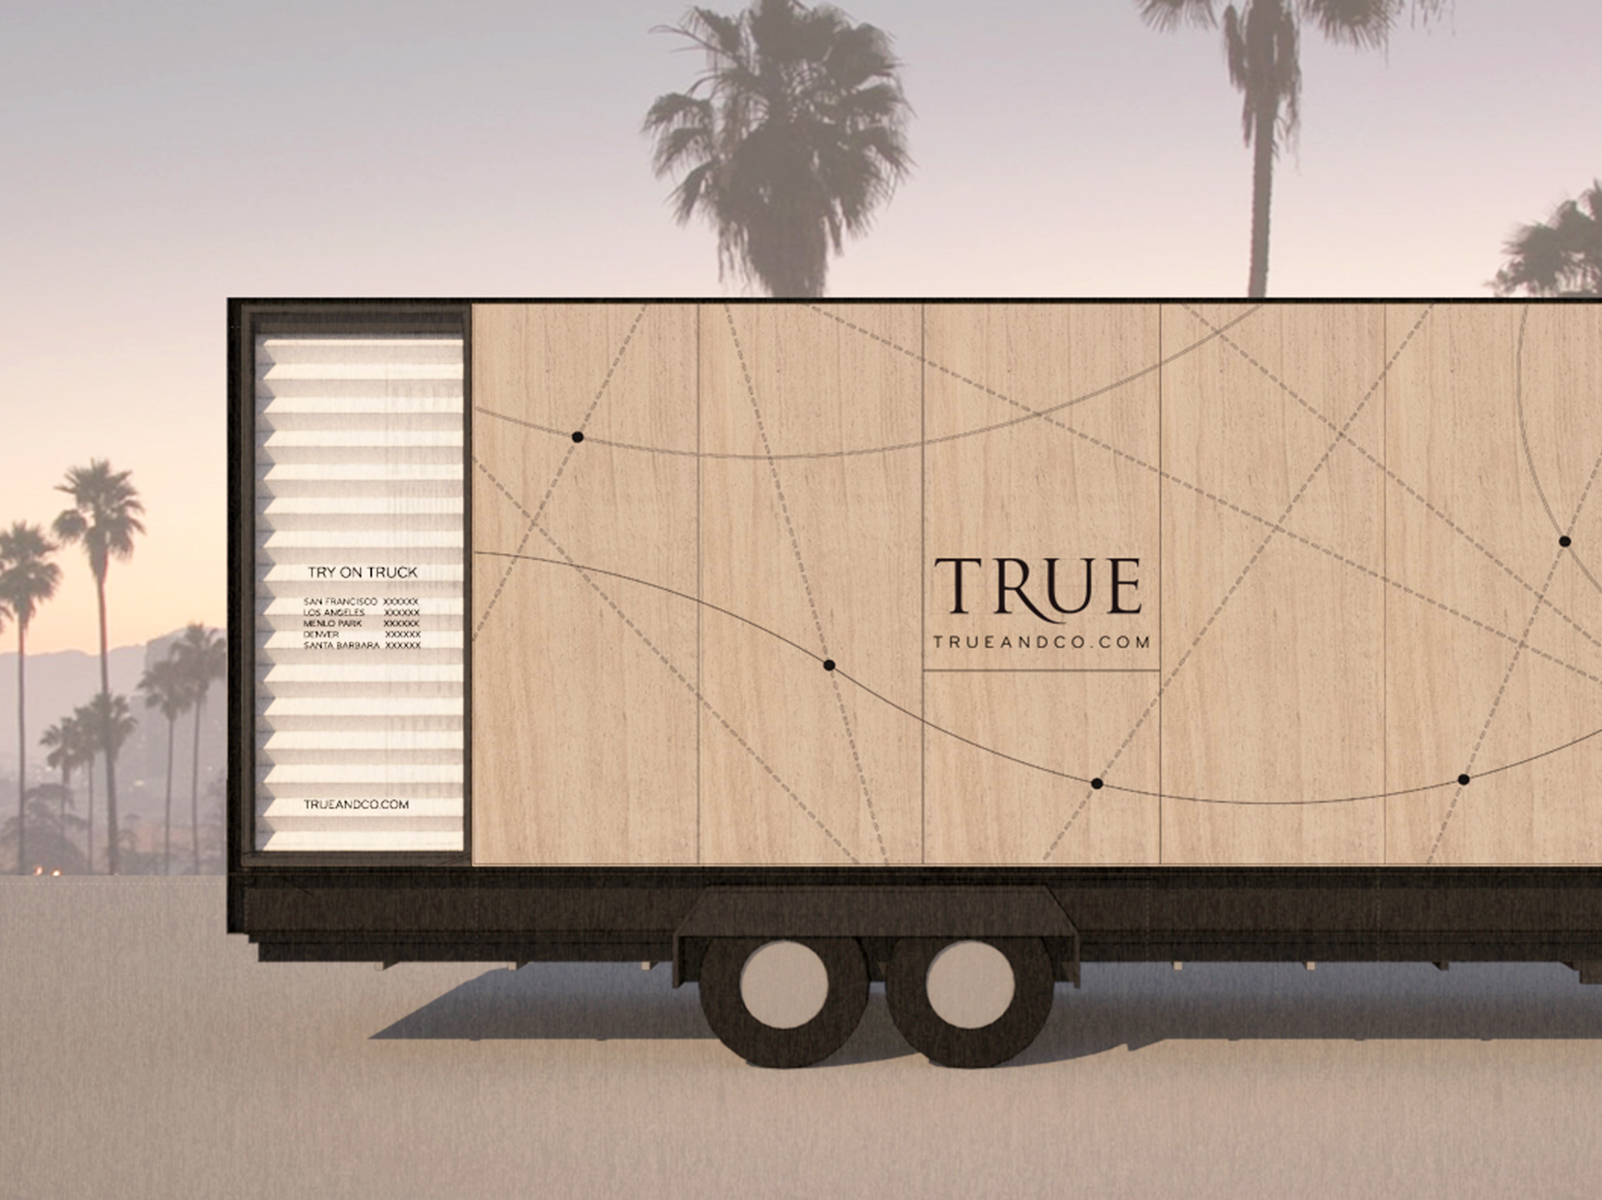 <h2>True&Co. Try-On Truck</h2><h3>web & graphic design </h3>